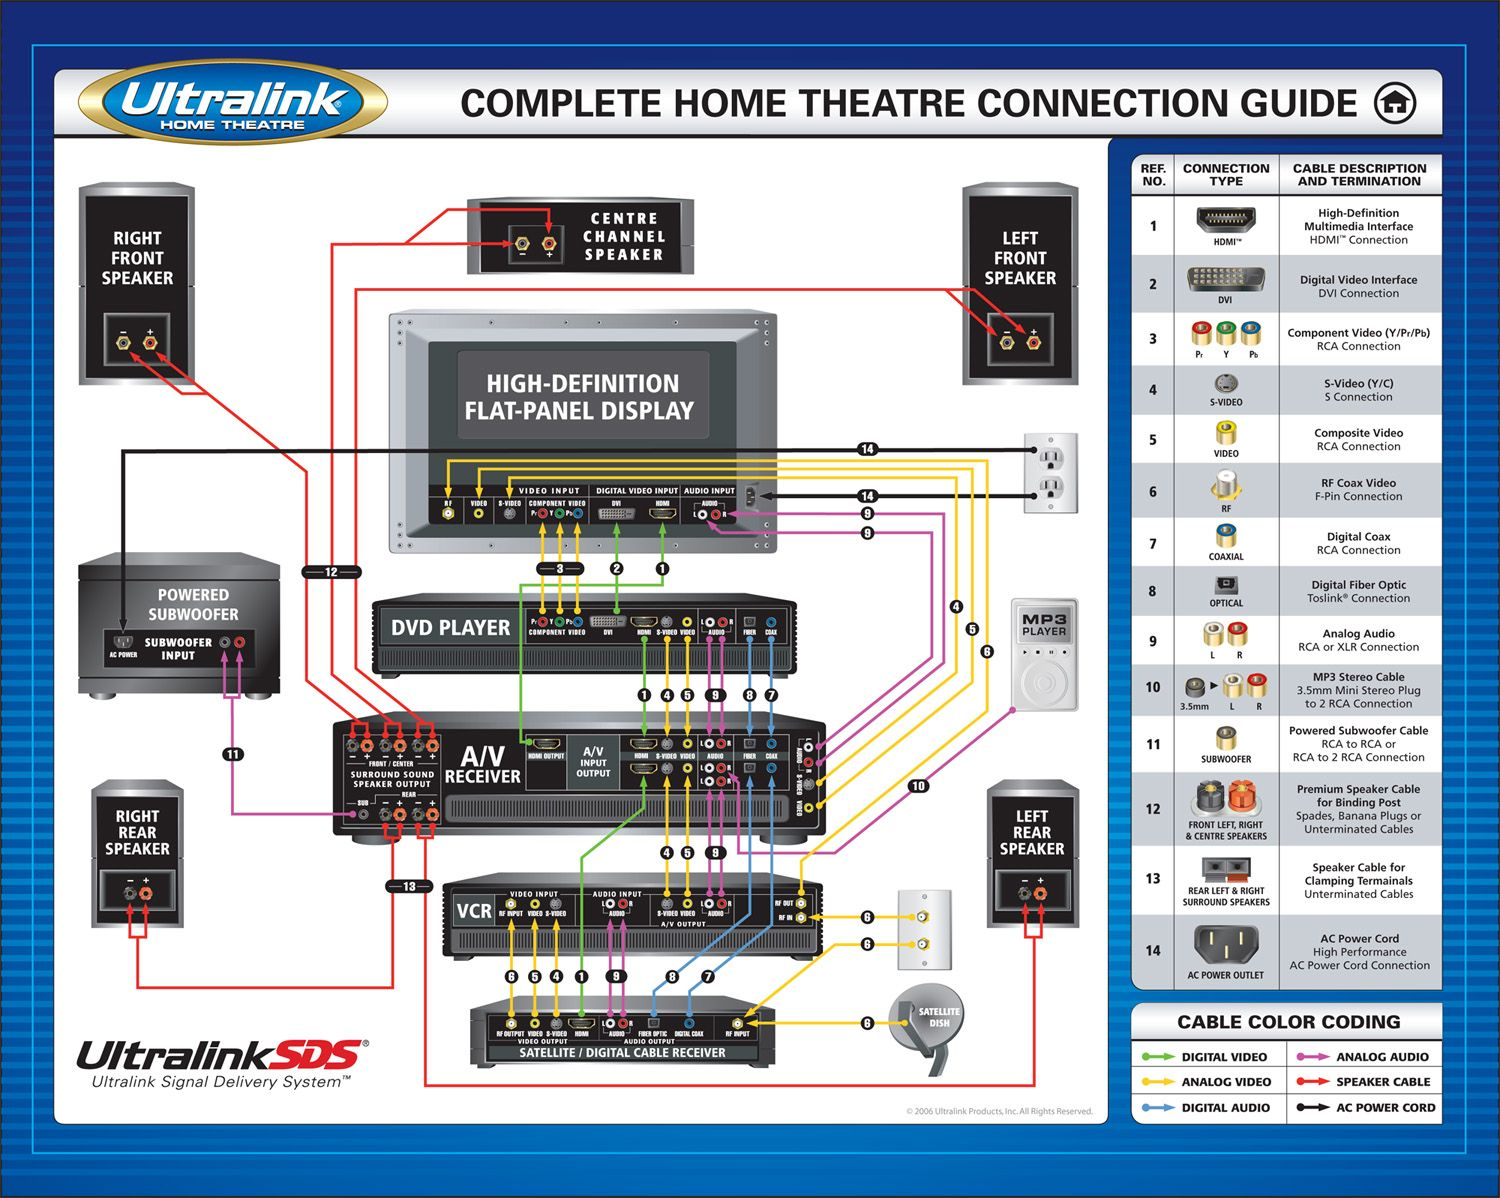 home theatre connection guide audio connections video connections home theater system connection diagram home theater system connection diagrams [ 1500 x 1198 Pixel ]